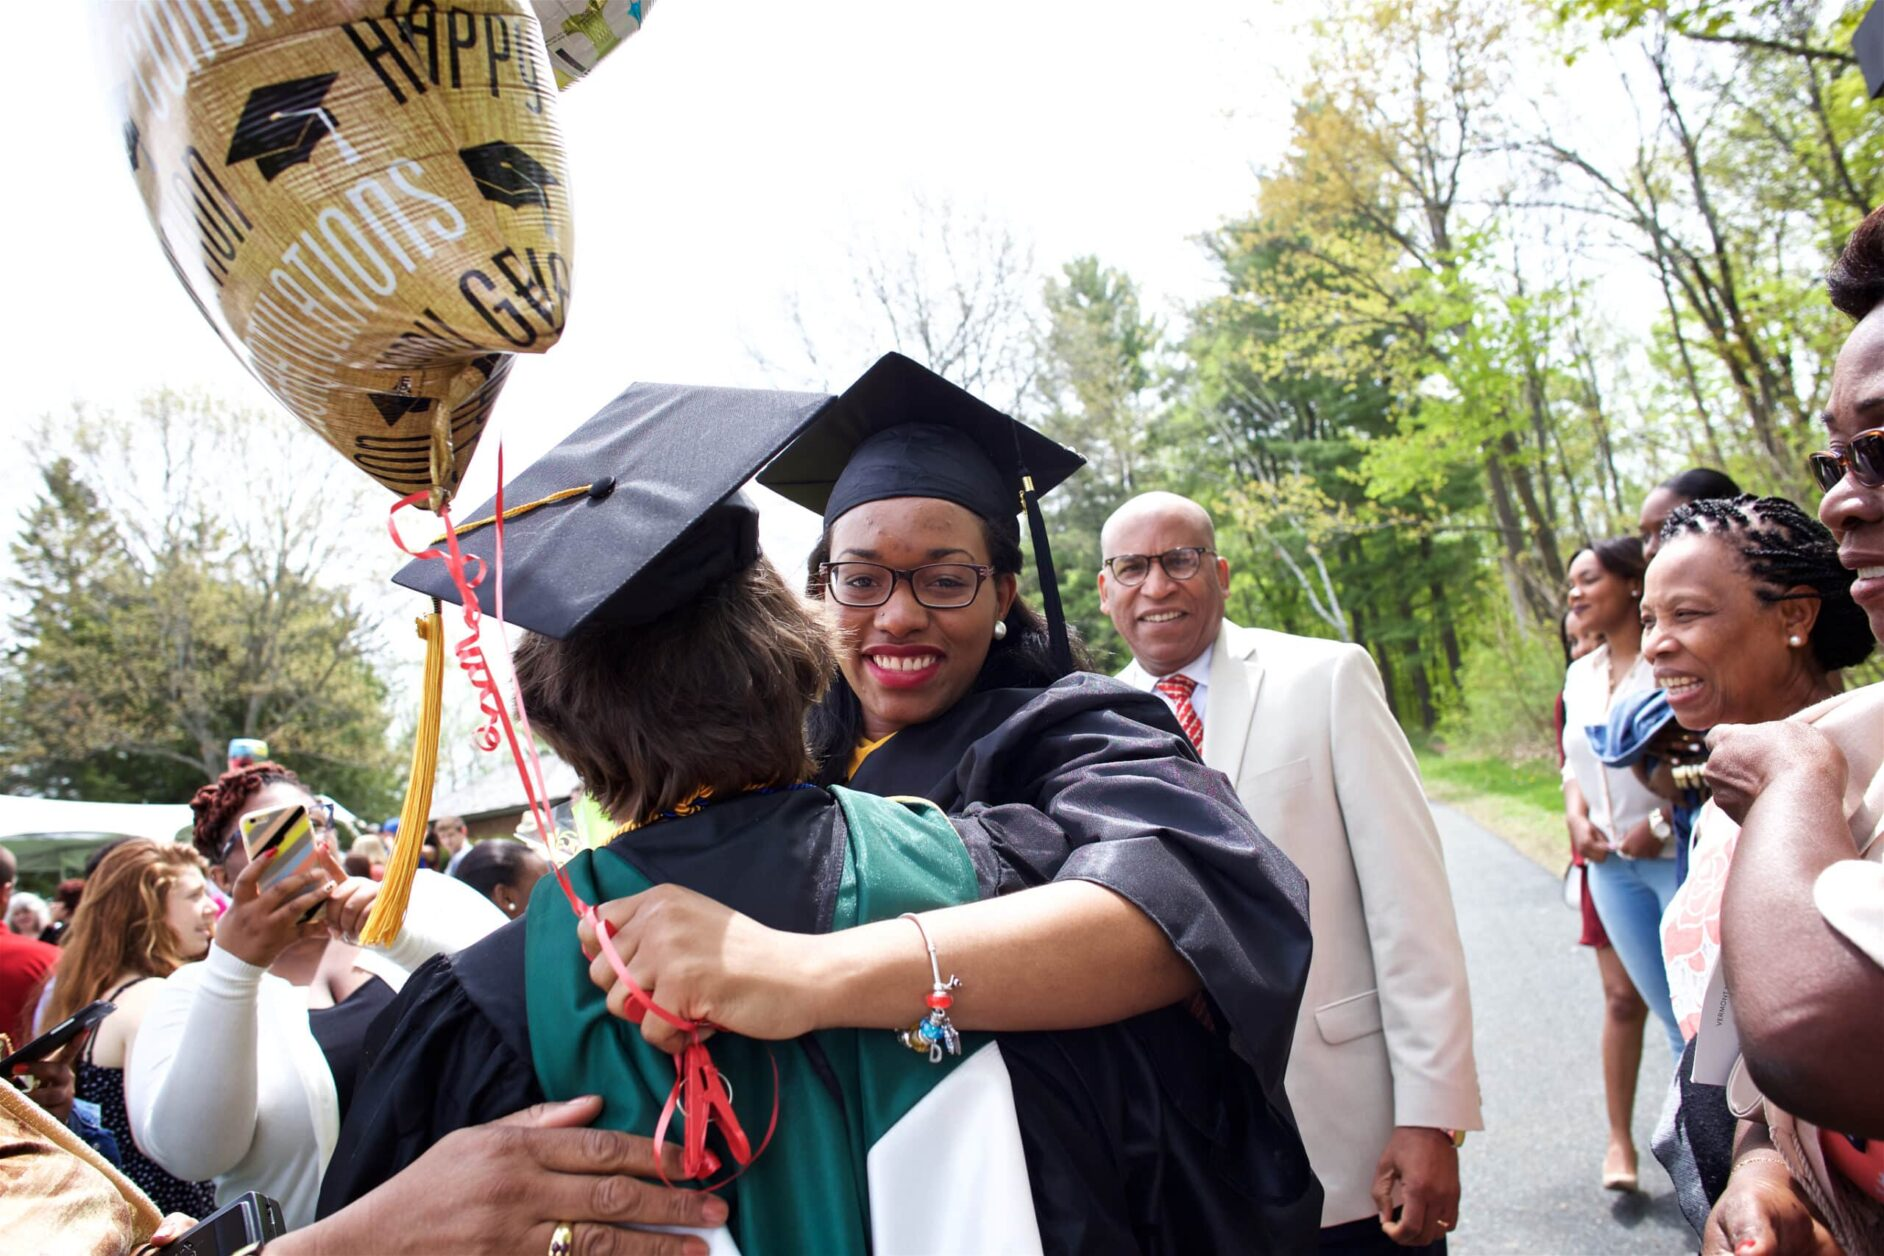 Two young women in graduation gowns hug holding balloons, onlookers smile behind